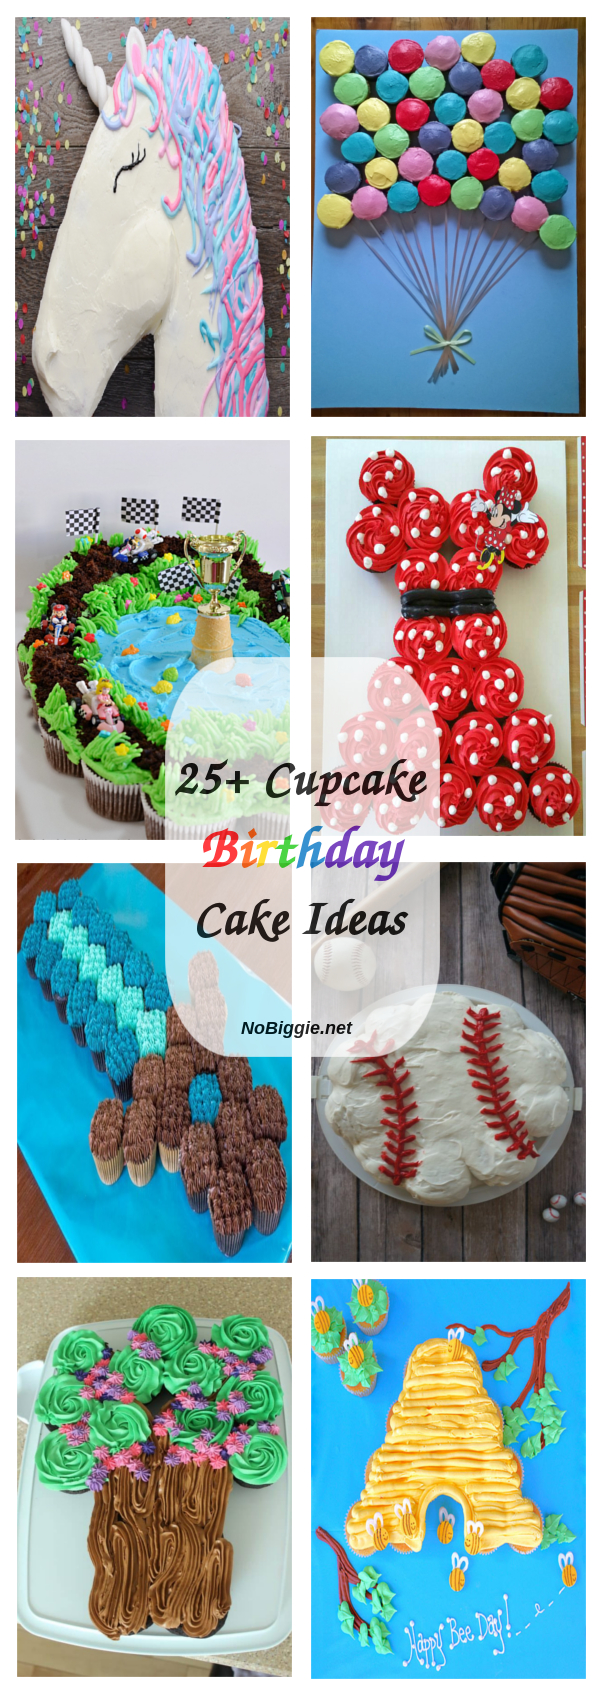 Stupendous 25 Cupcake Birthday Cake Ideas Nobiggie Birthday Cards Printable Trancafe Filternl